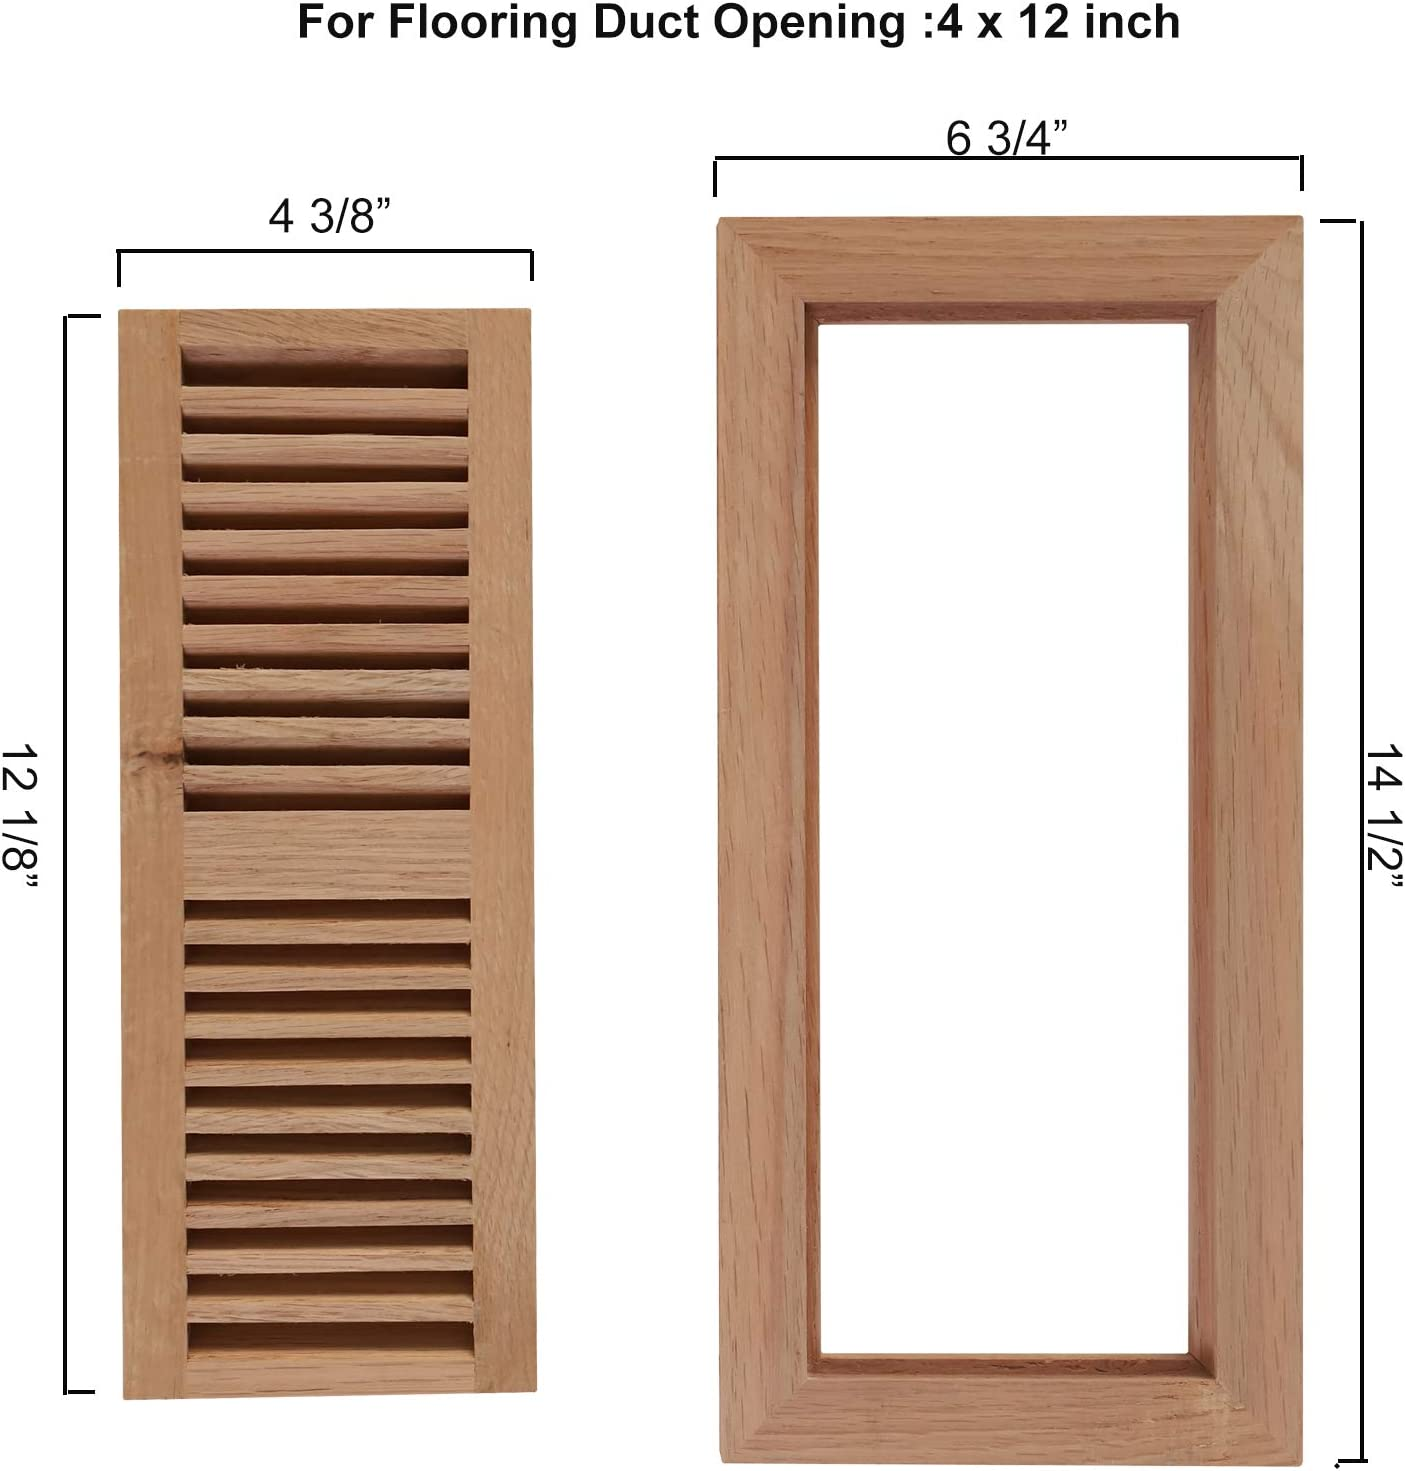 Welland 4 Inch By 12 Inch Hickory Wood Floor Vent Flush Mount With Frame Floor Register Vent Unfinished 3 4 Thickness Home Improvement